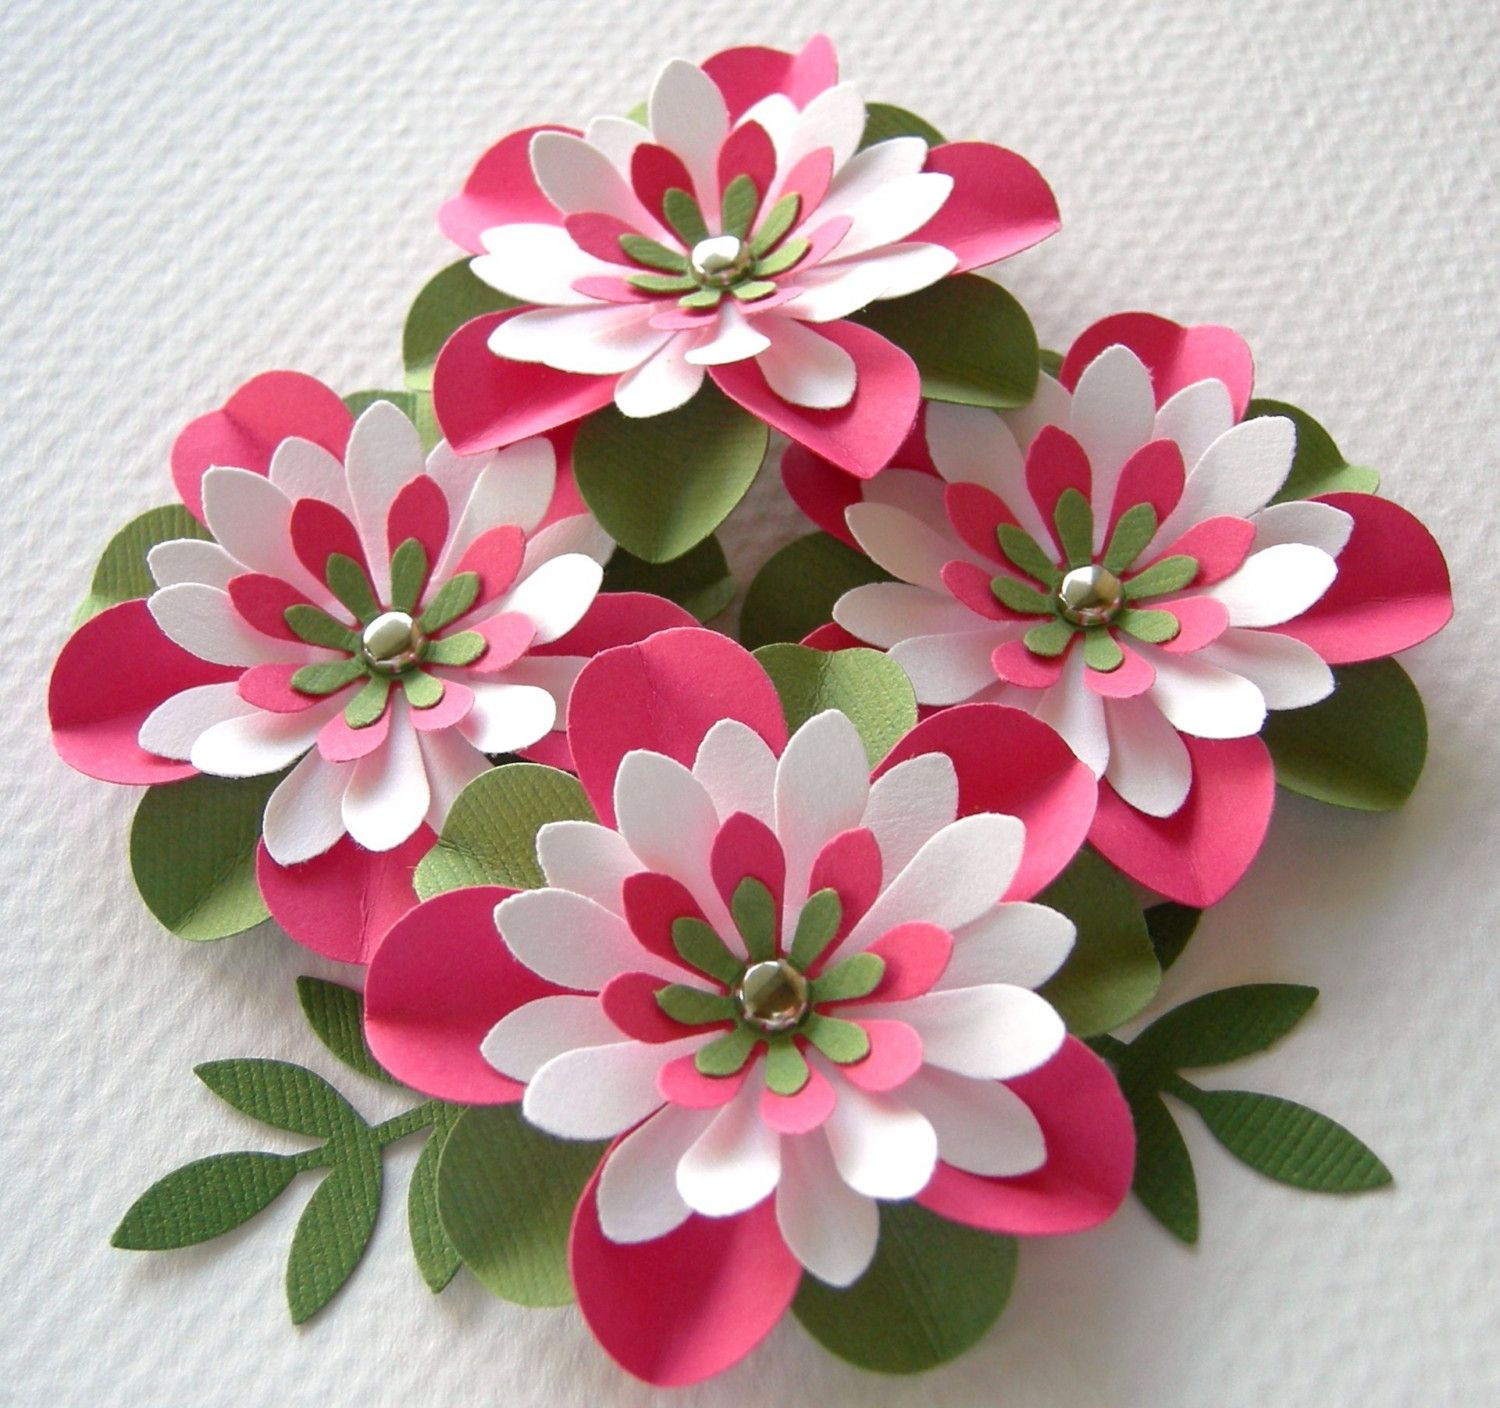 Paper Flowers Watermelon Round Creased With Brads 4